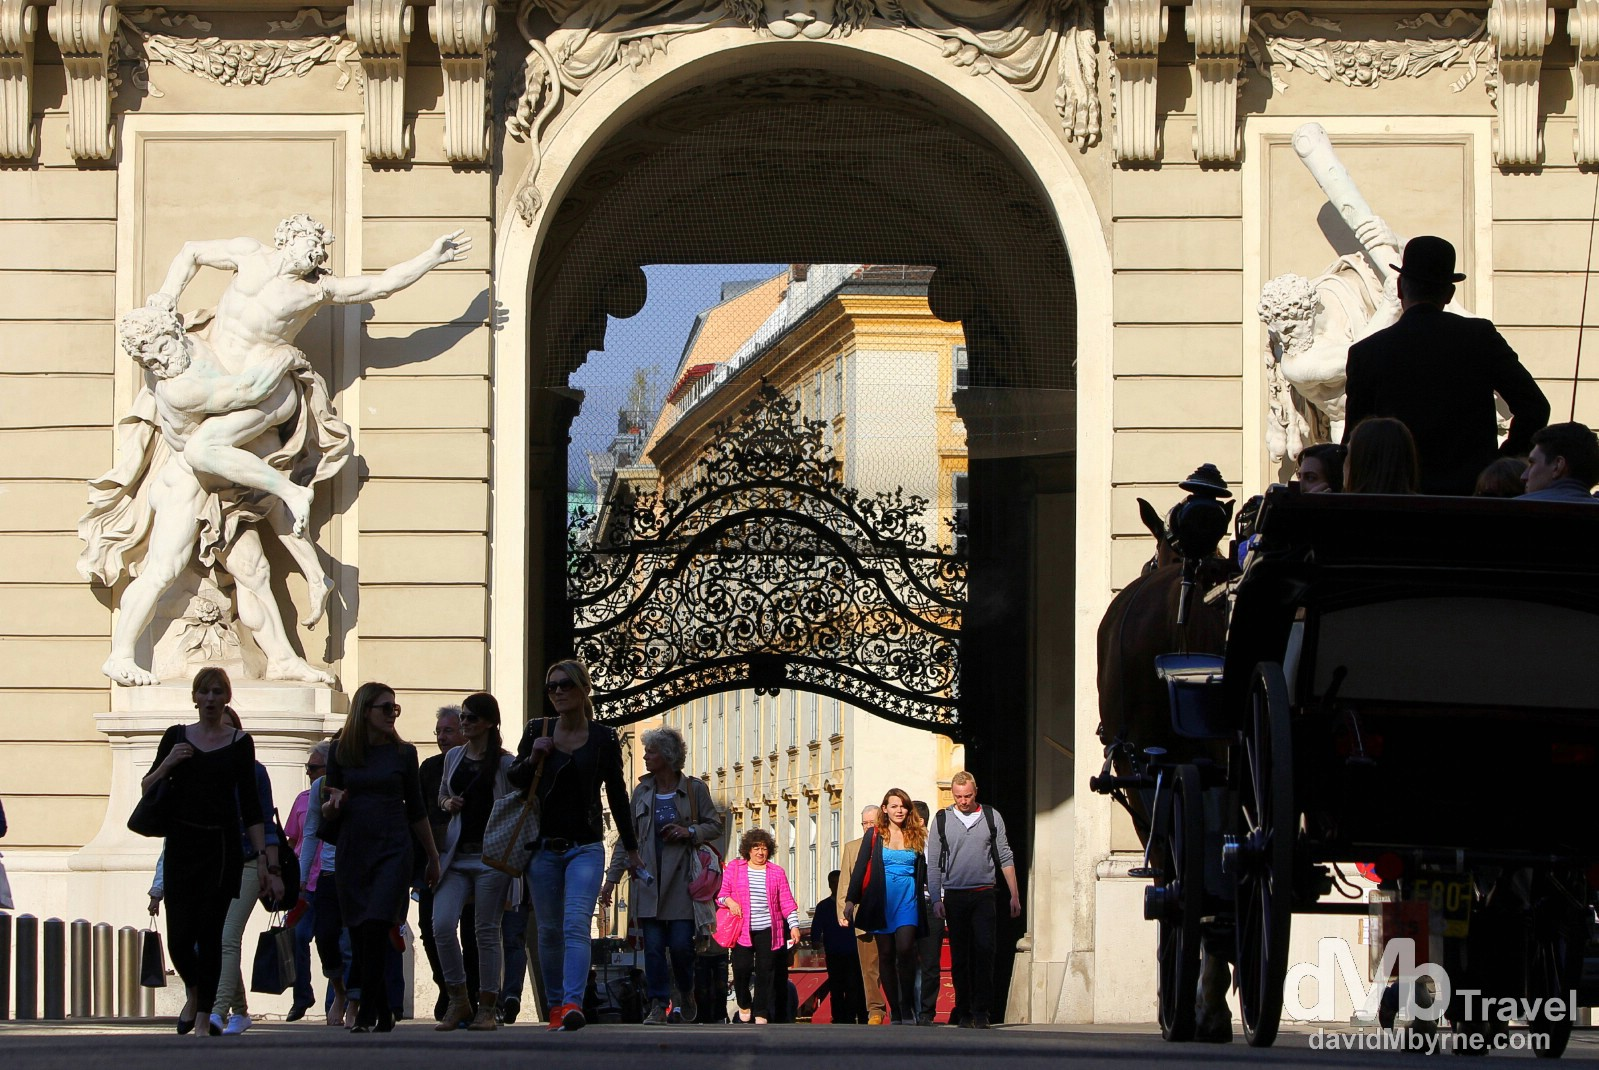 Passing through Michaelertor, the north-eastern gate of the Hofburg, the former Royal Palace in Vienna, Austria. March 29th, 2014.